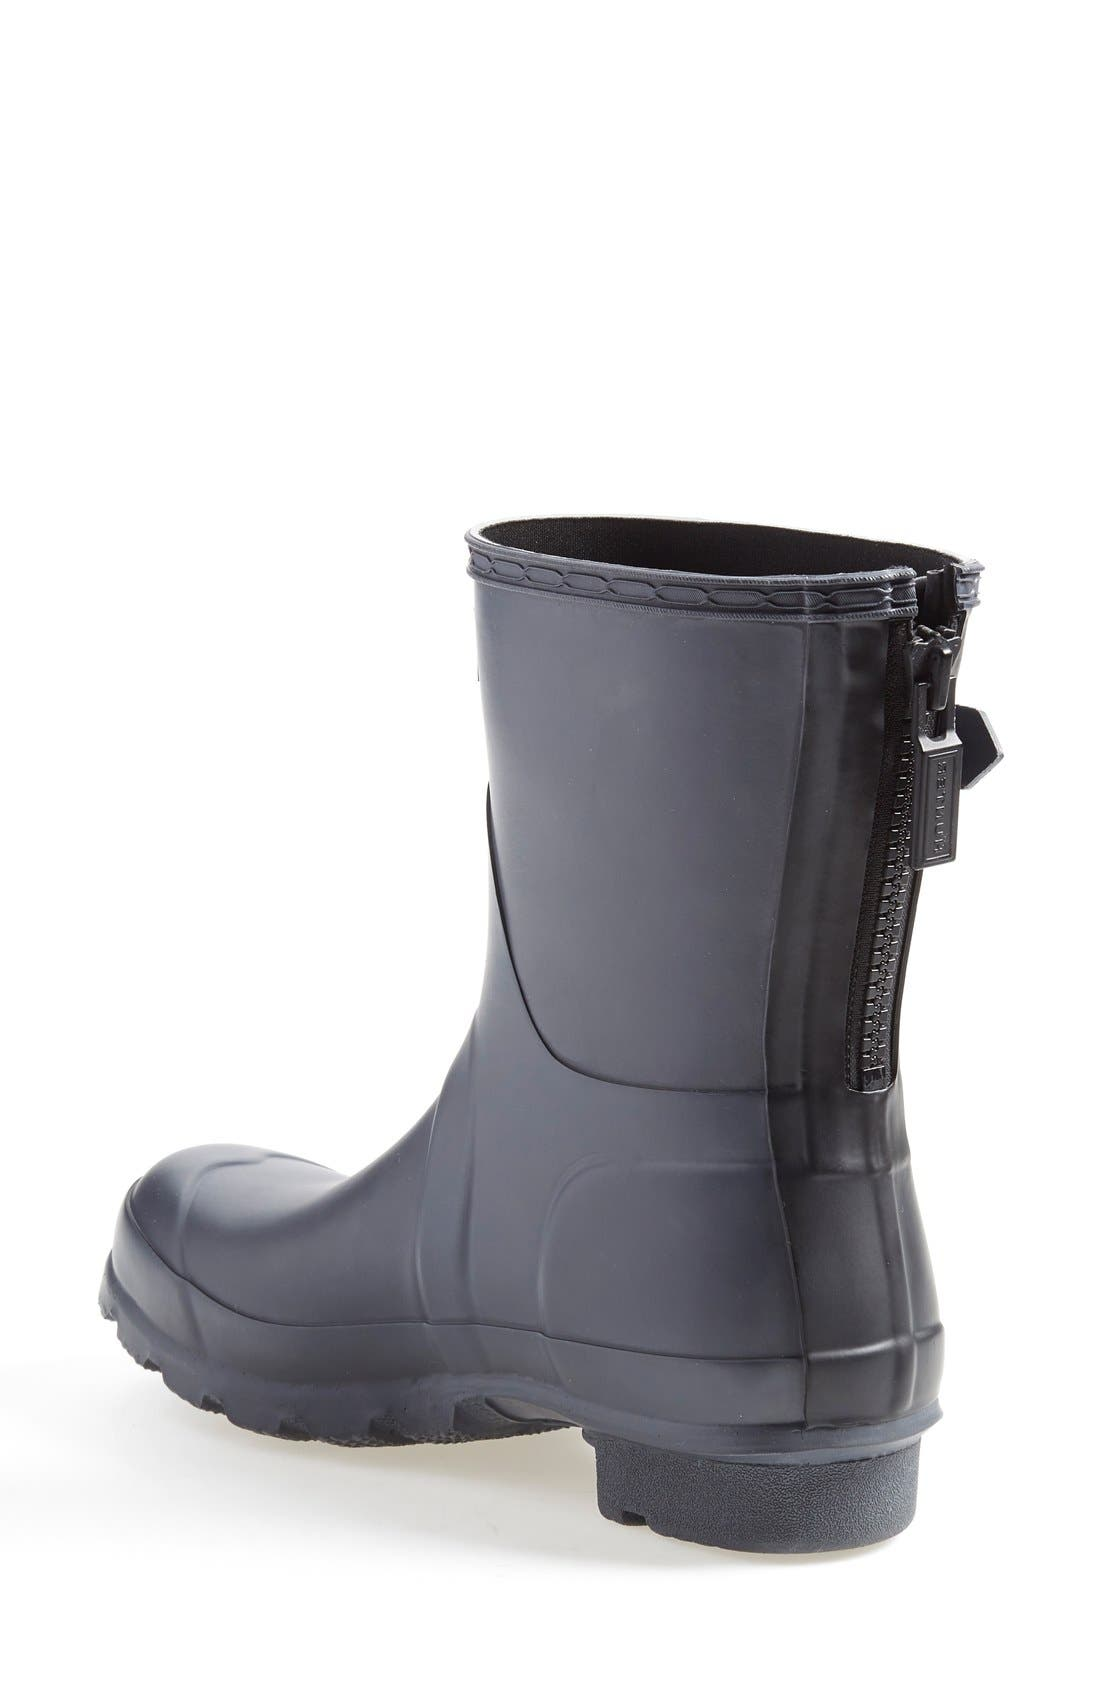 'Short' Back Zip Rain Boot,                             Alternate thumbnail 2, color,                             Slate/ Black